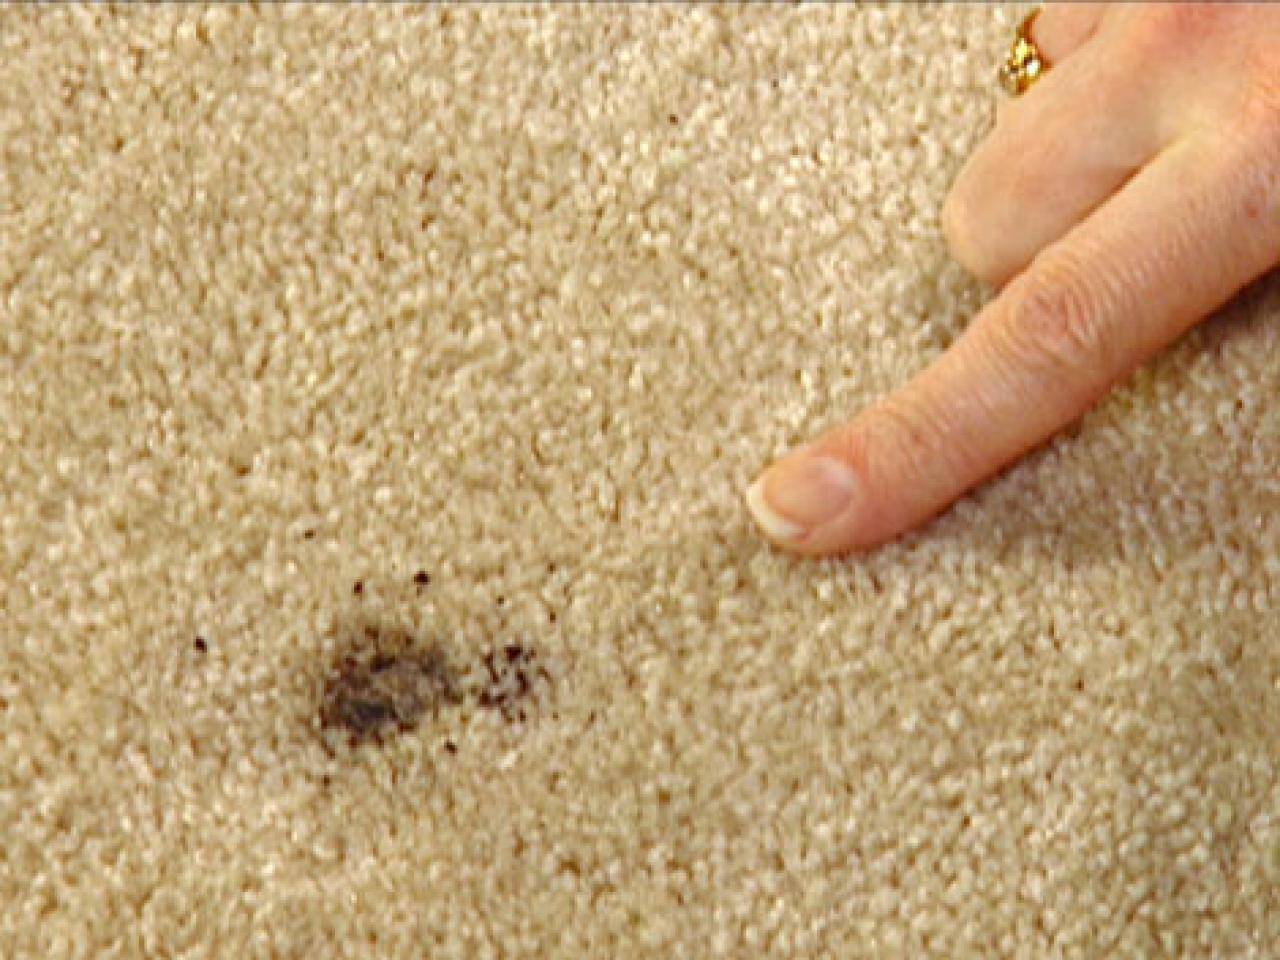 Carpet Damage